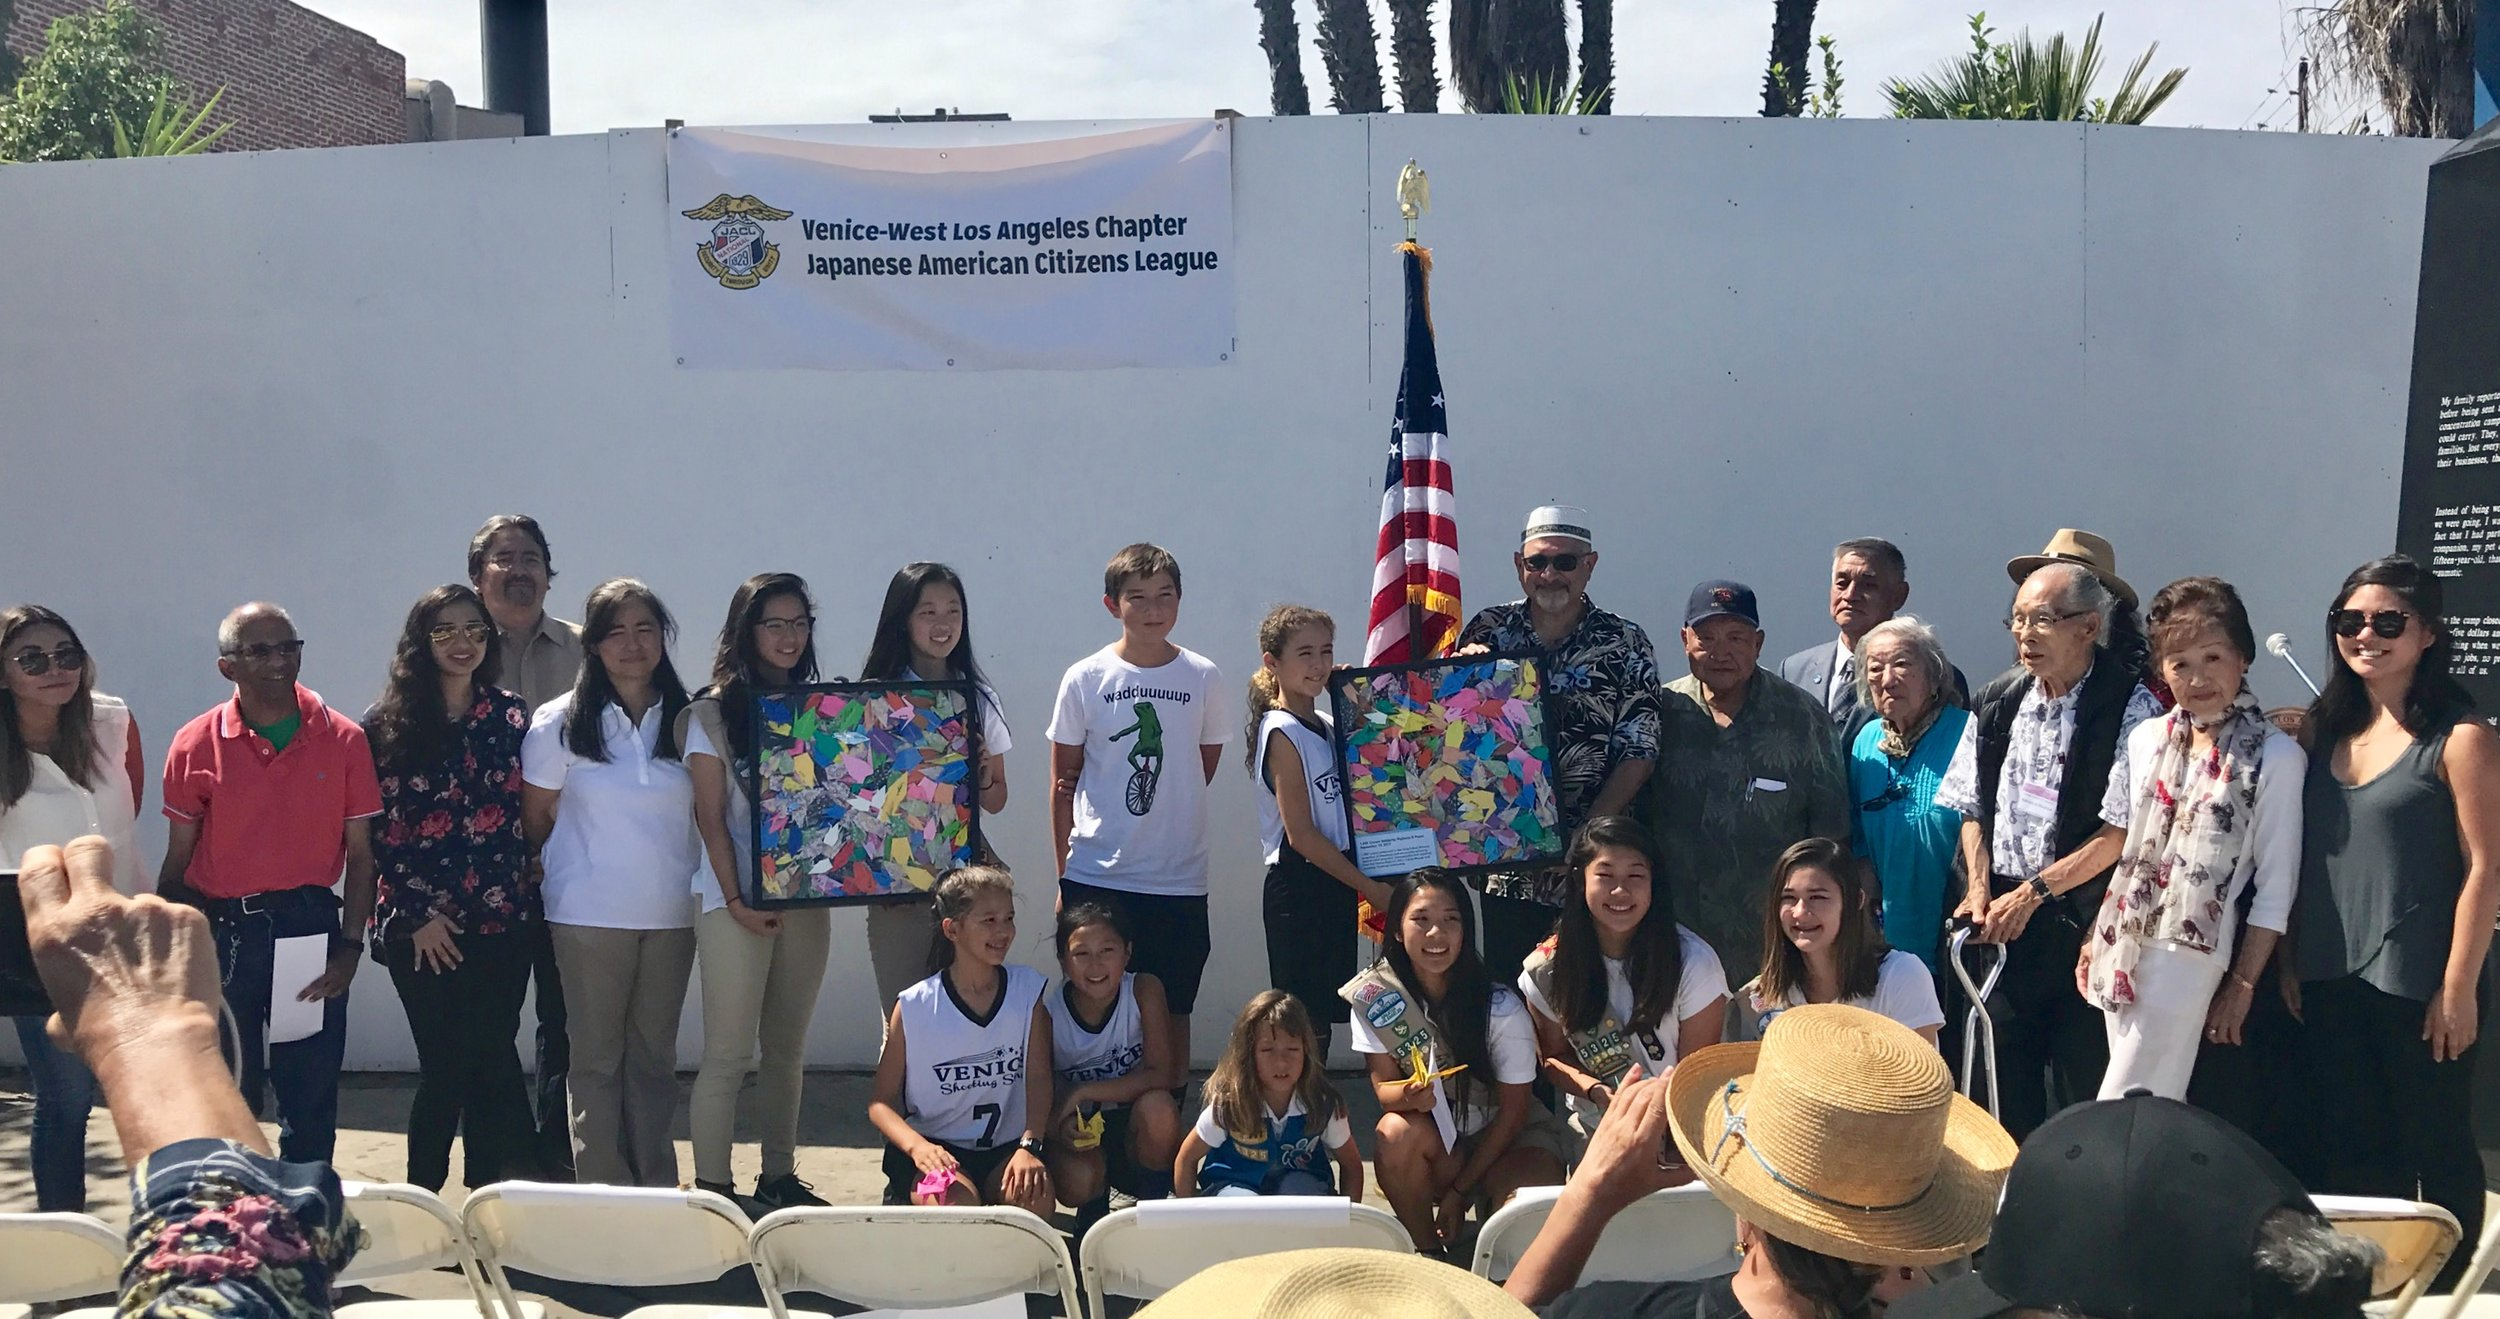 Japanese American youth and former WWII incarcerees, Venice-West LA JACL Board Members and Camp Musubi present 1,000 Cranes to King Fahad Mosque of Culver City.